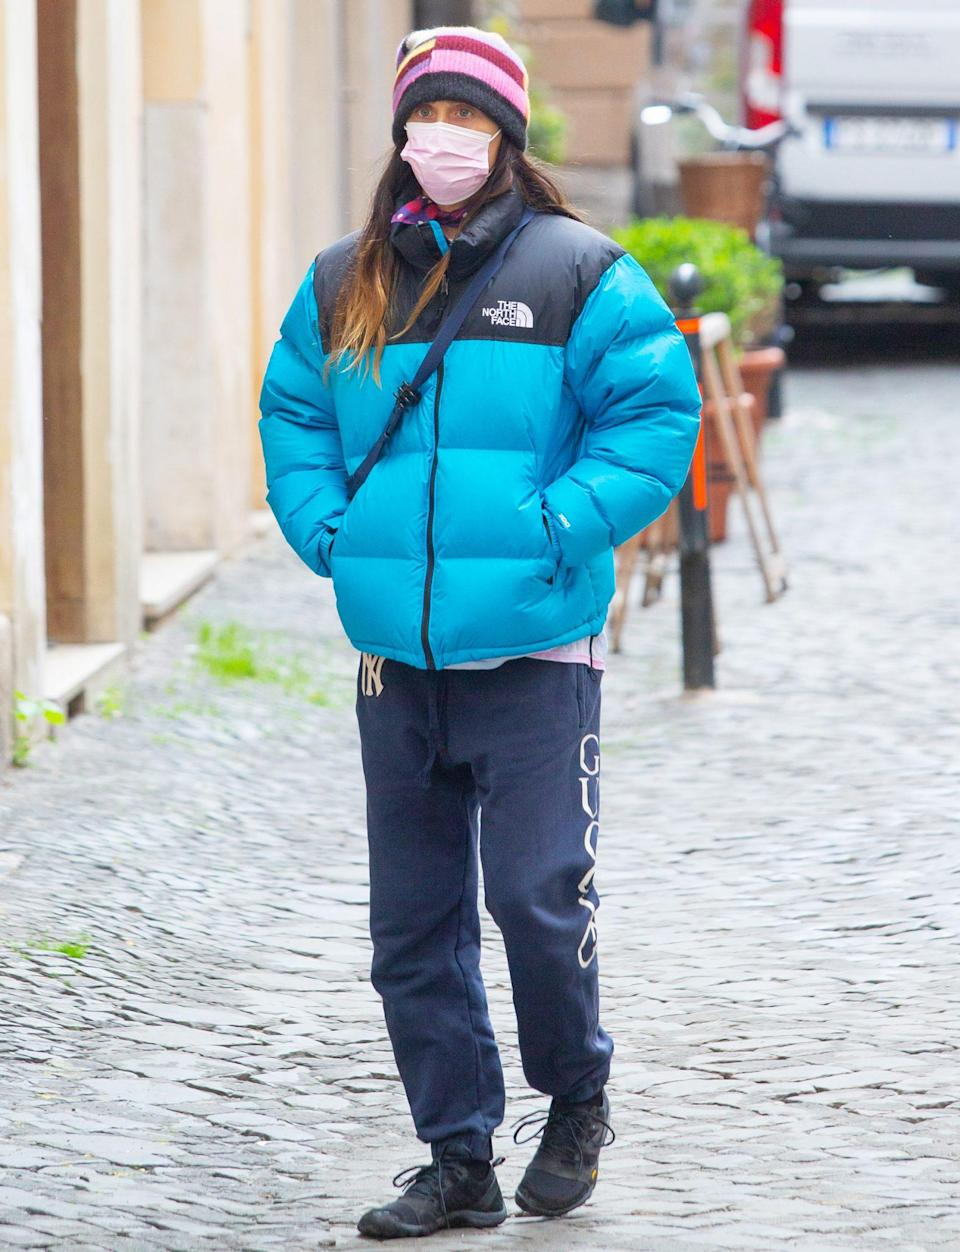 <p>Jared Leto, who's been cast in Ridley Scott's <em>House of Gucci</em>, is spotted out wearing a blue puffer and beanie on Wednesday.</p>